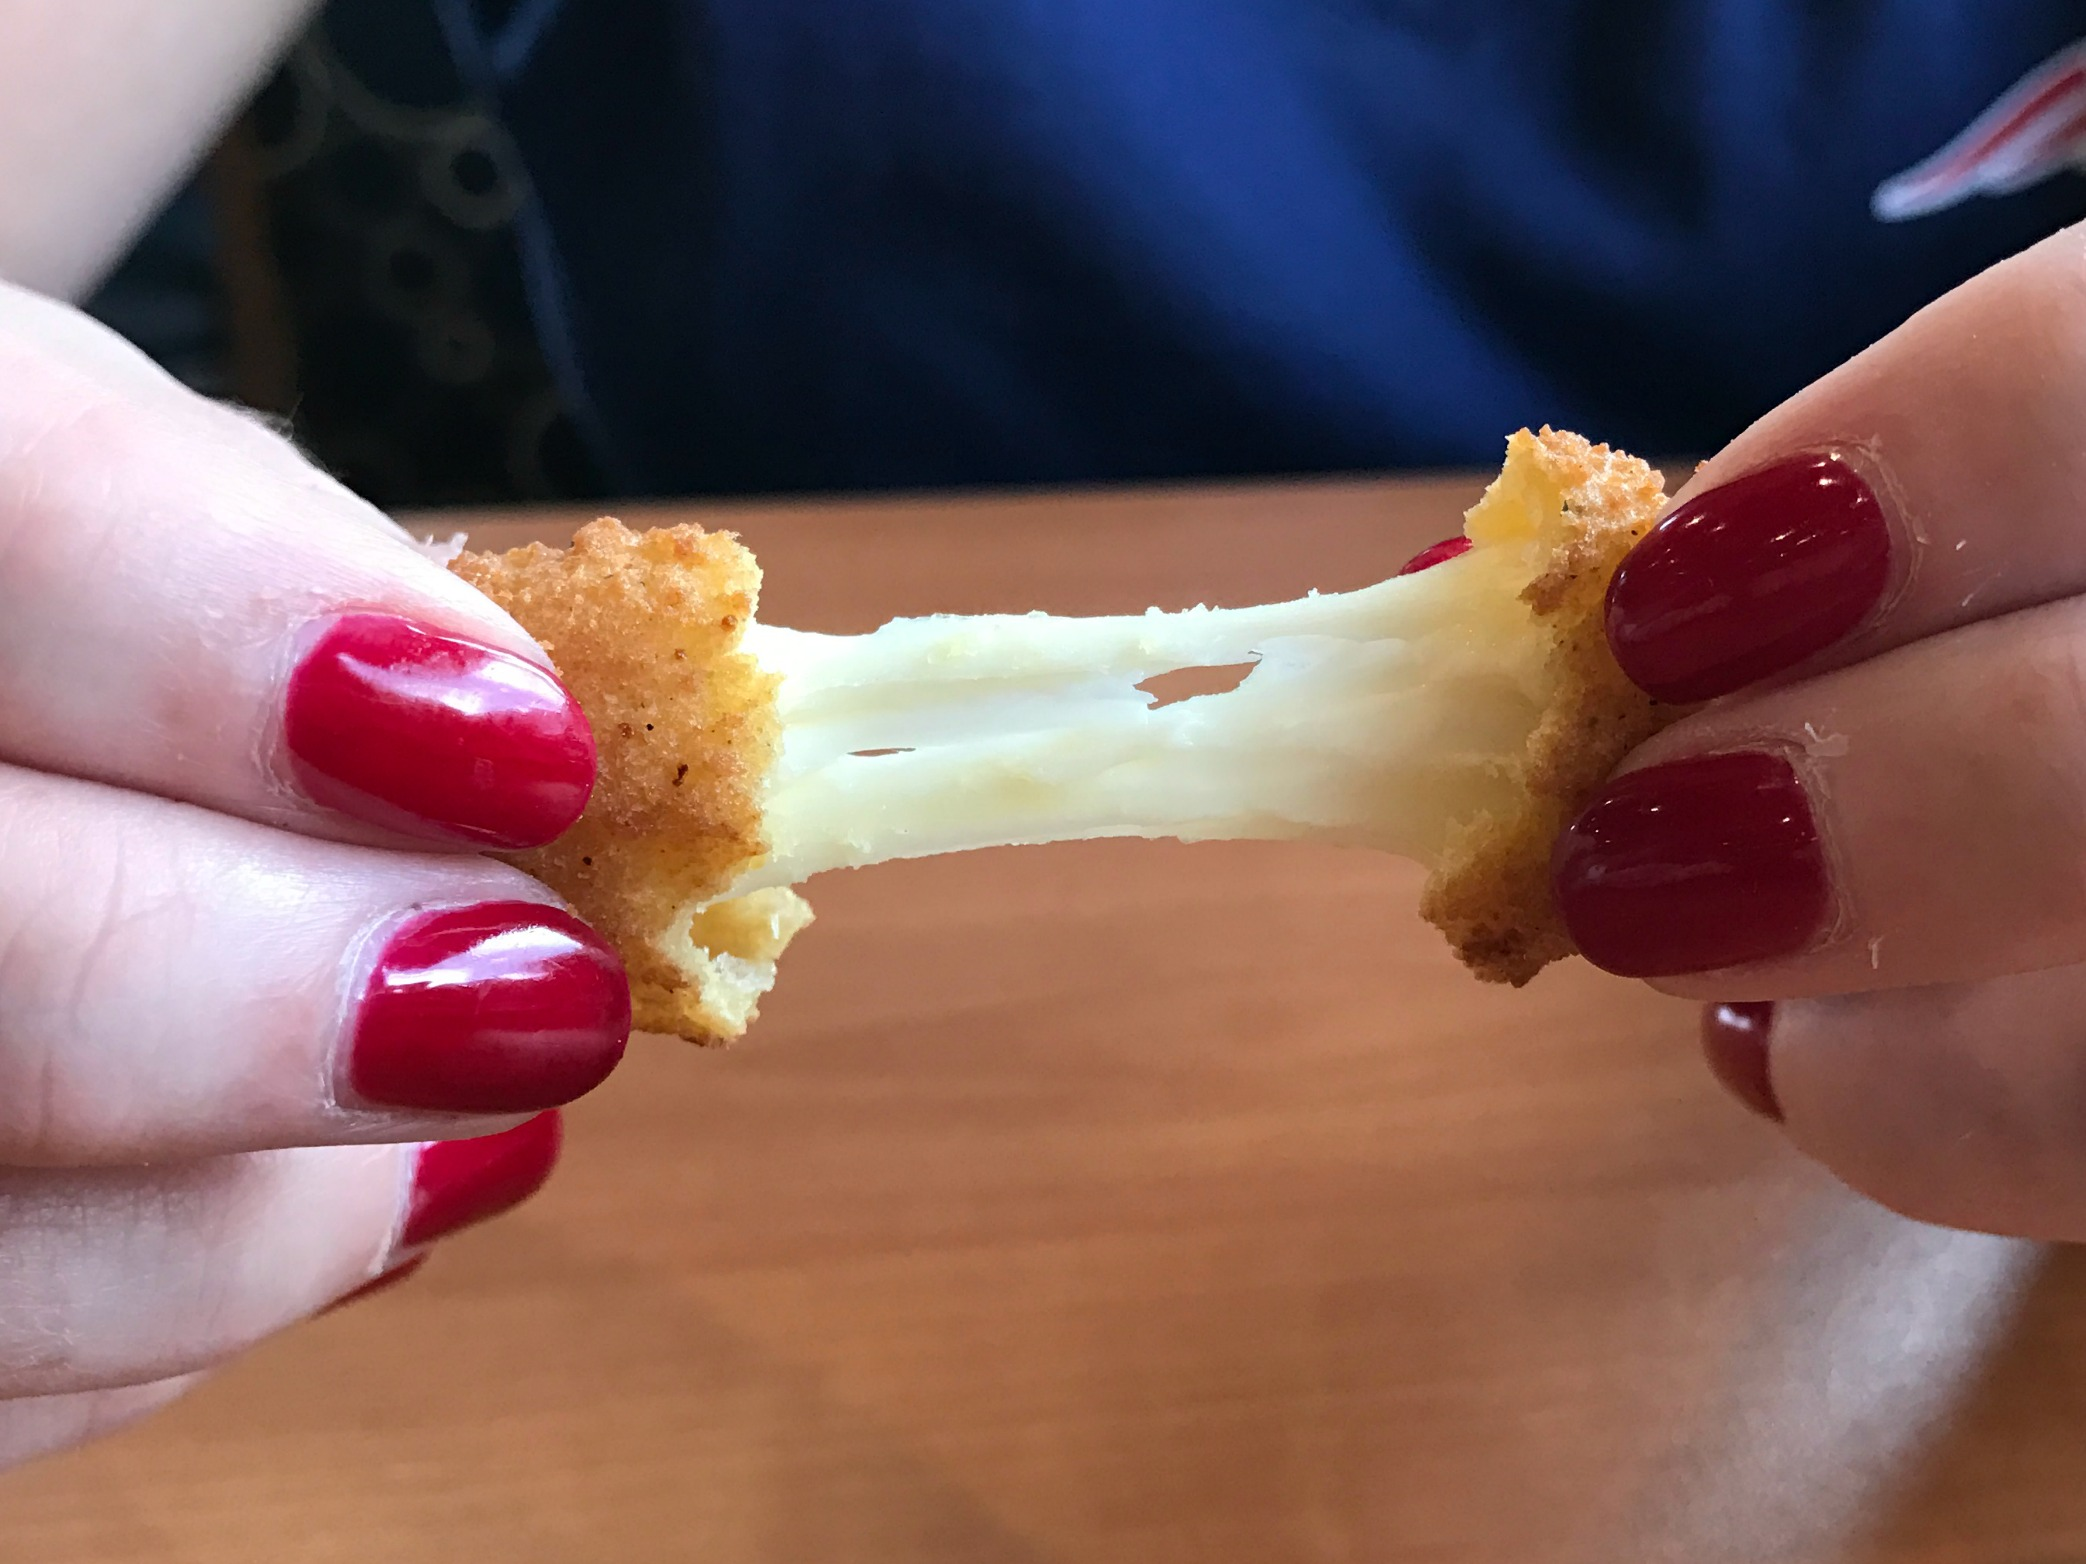 Culvers-national-cheese-curd-day-giveaway-cheese-pull